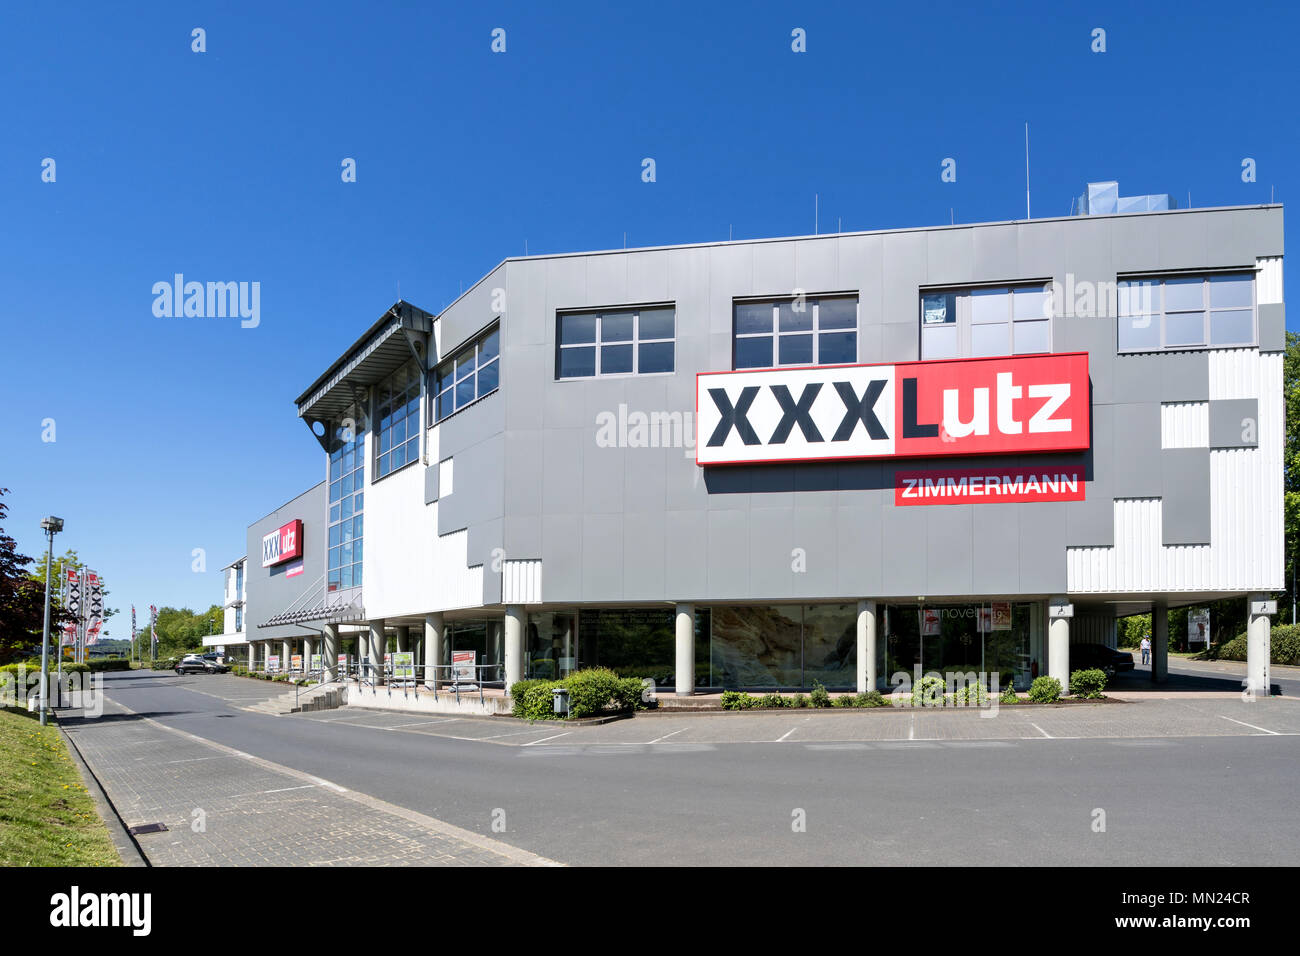 Xlutz Graz Austria Retail Facade Stock Photos Austria Retail Facade Stock